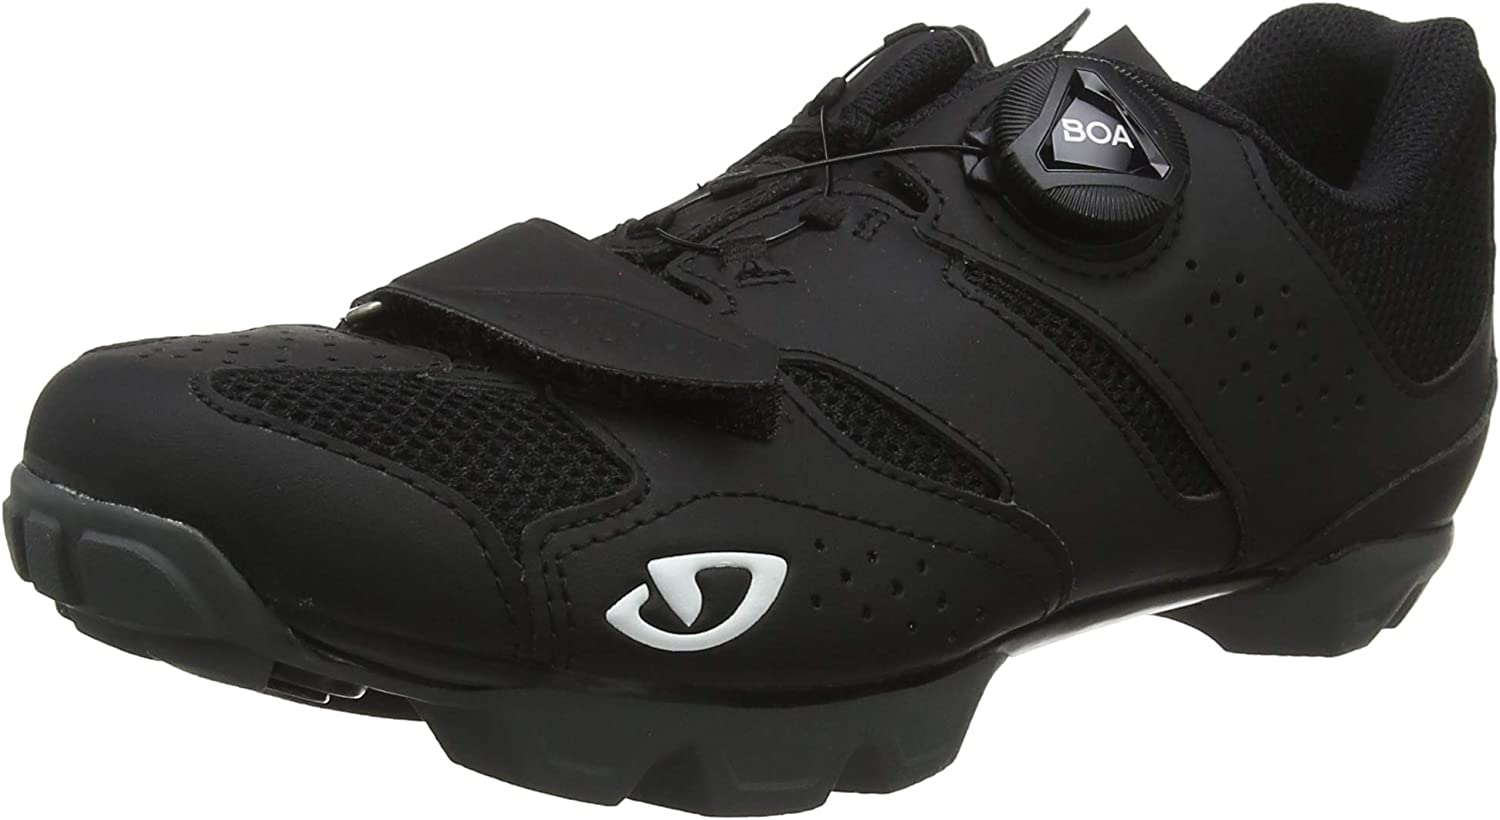 Giro Women's Mountain Cycling Shoes